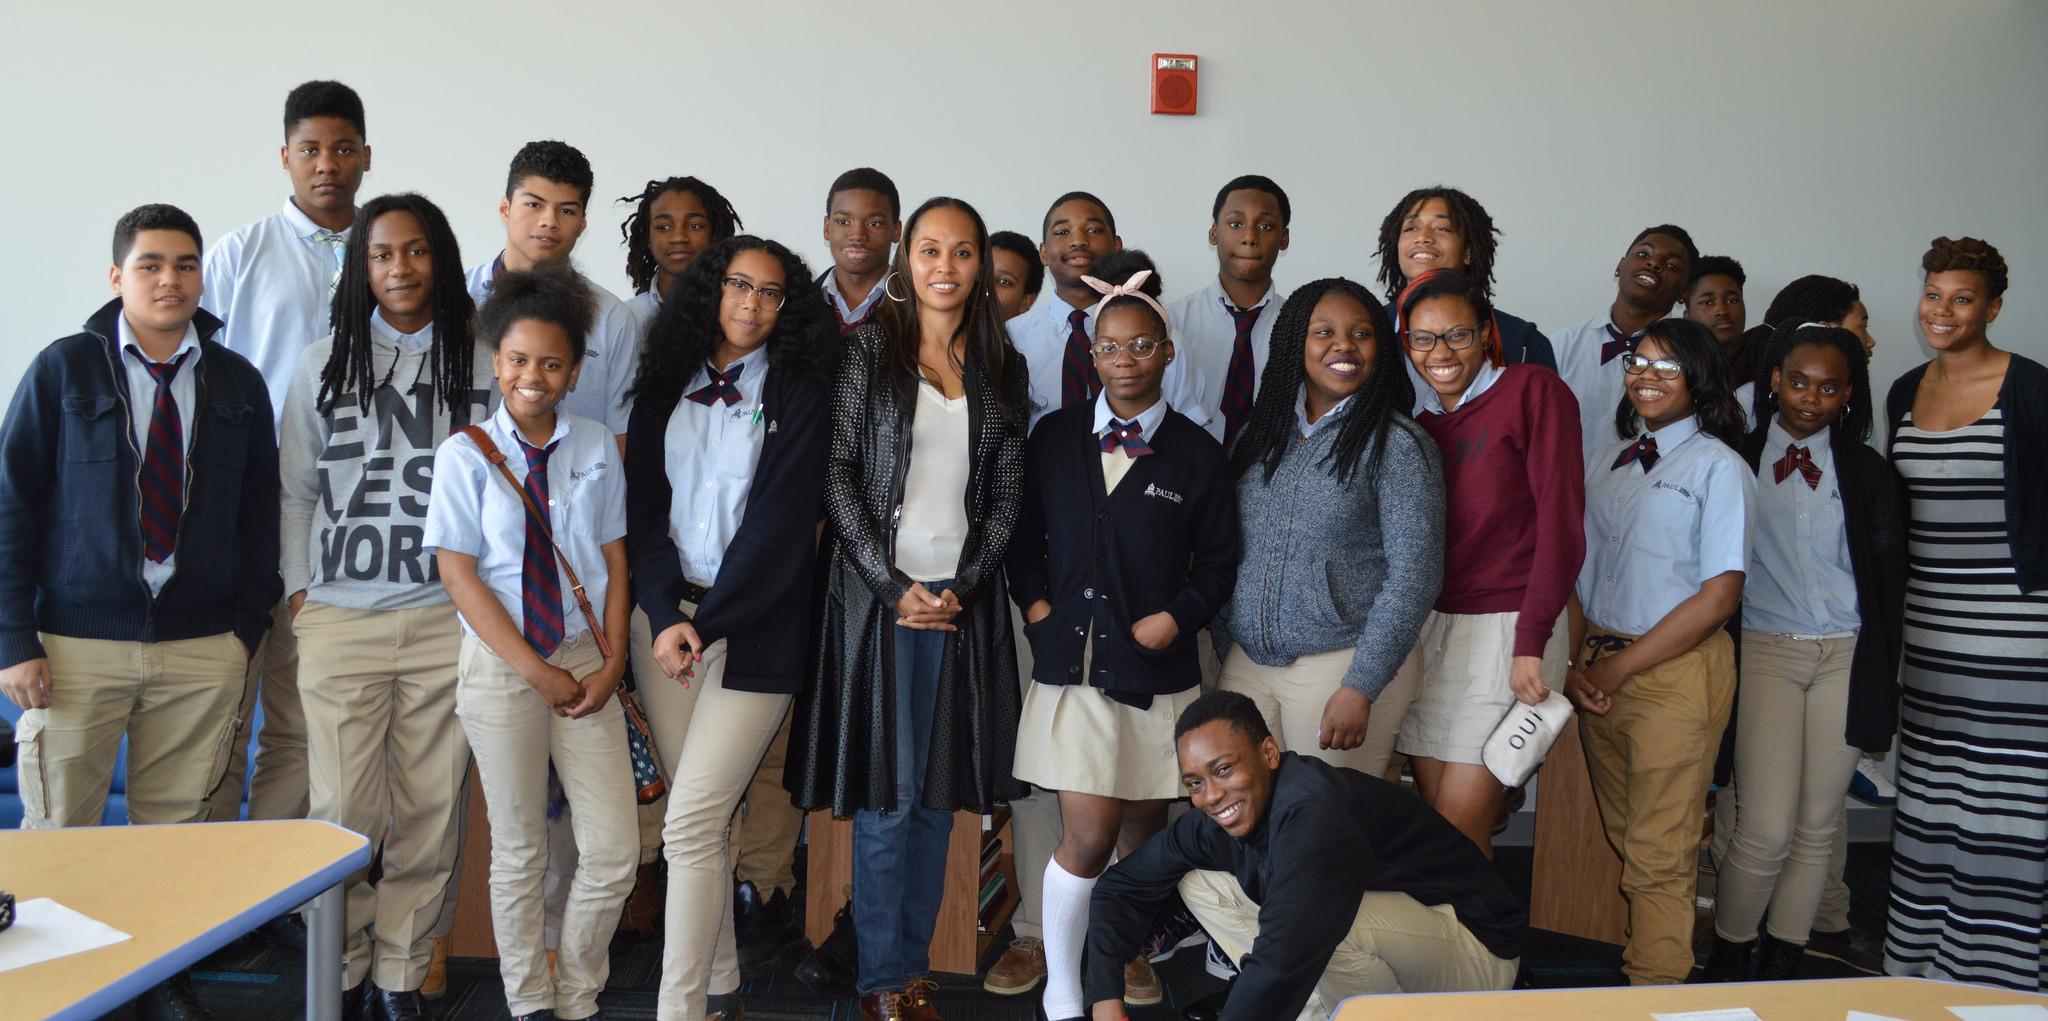 Kimberley Motley and students. Click photo to see full album.